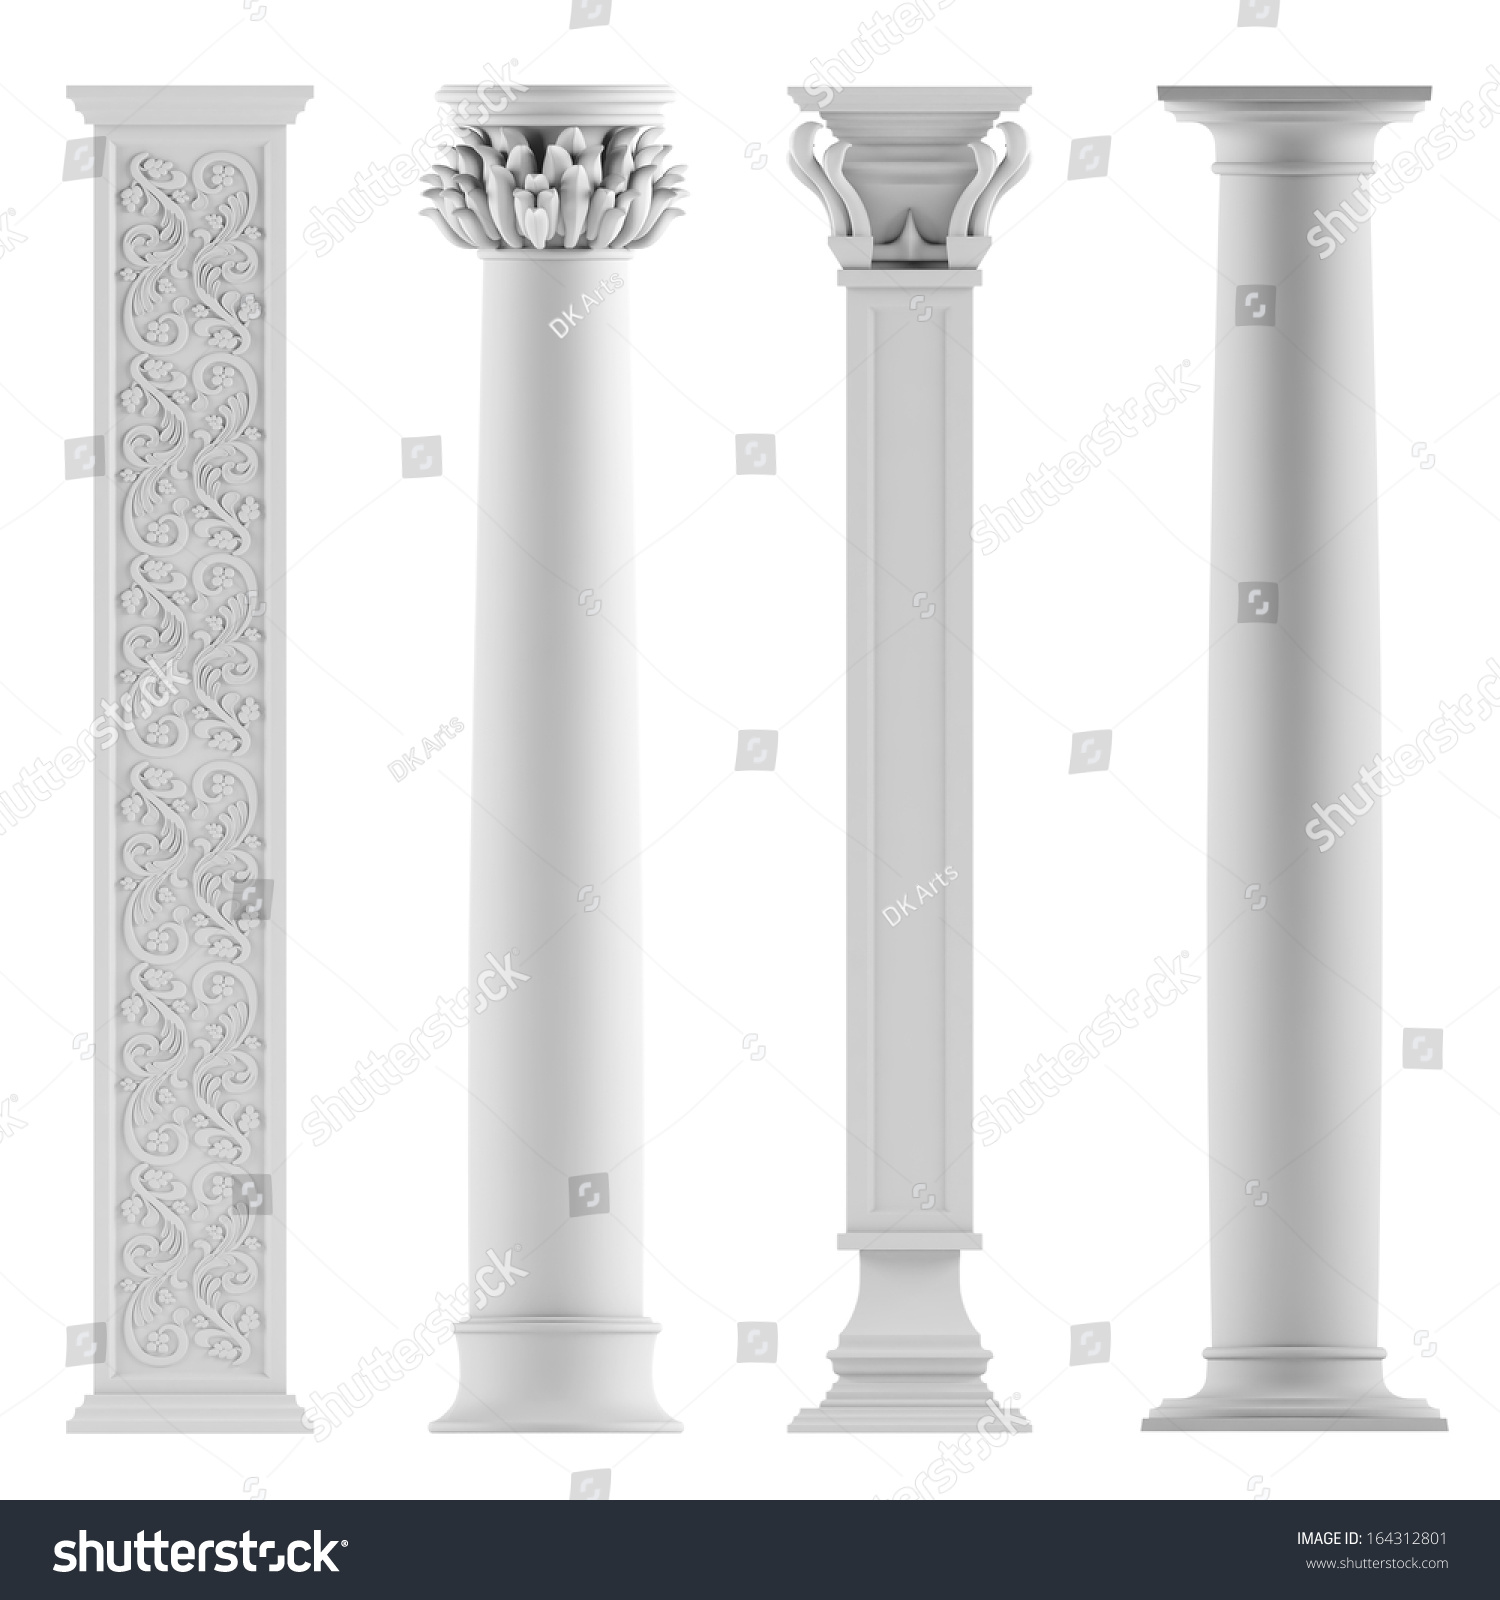 Modern style architectural classic columns stock for Architectural columns